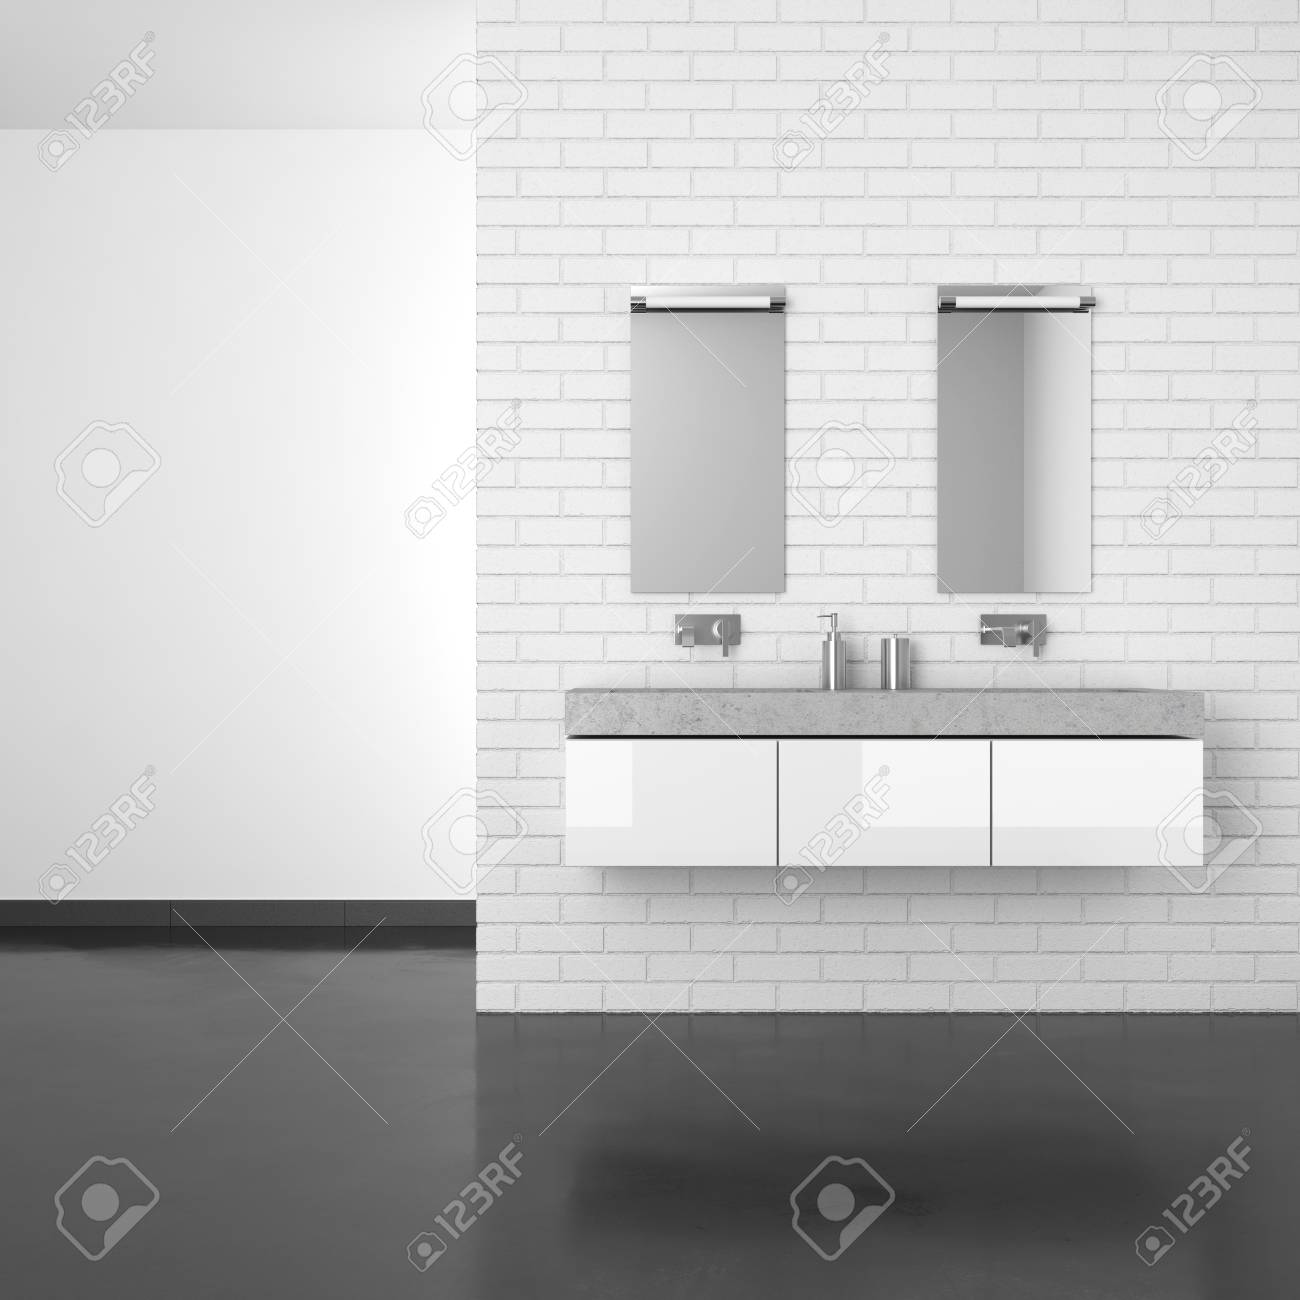 Modern Bathroom With White Brick Wall And Dark Floor In Resin